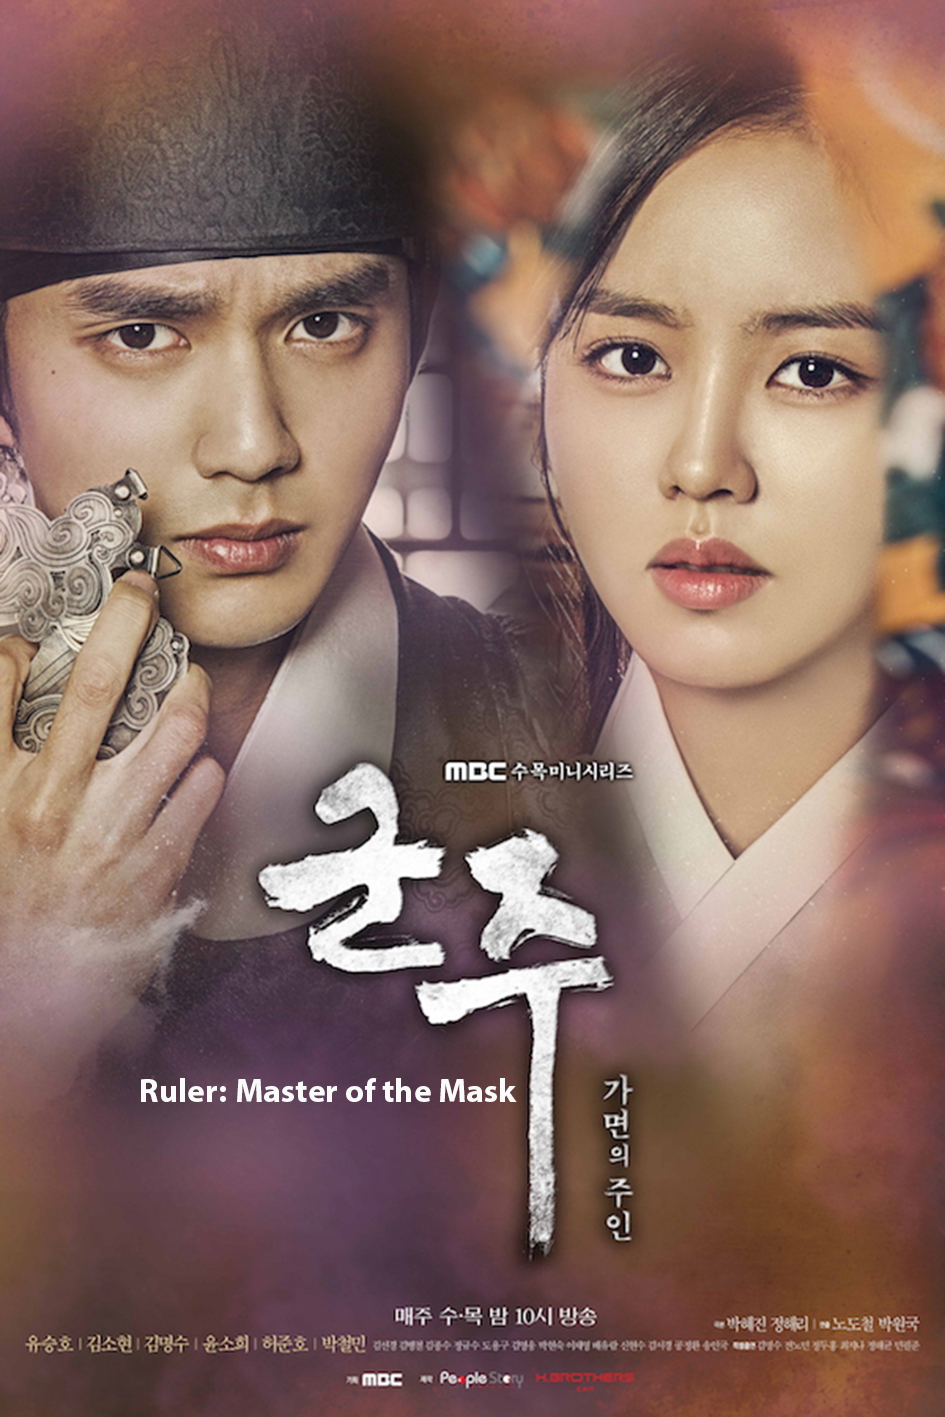 Ruler: Master of the Mask [2017 Korea Series] 40 eps END (5) Drama, History, Romance